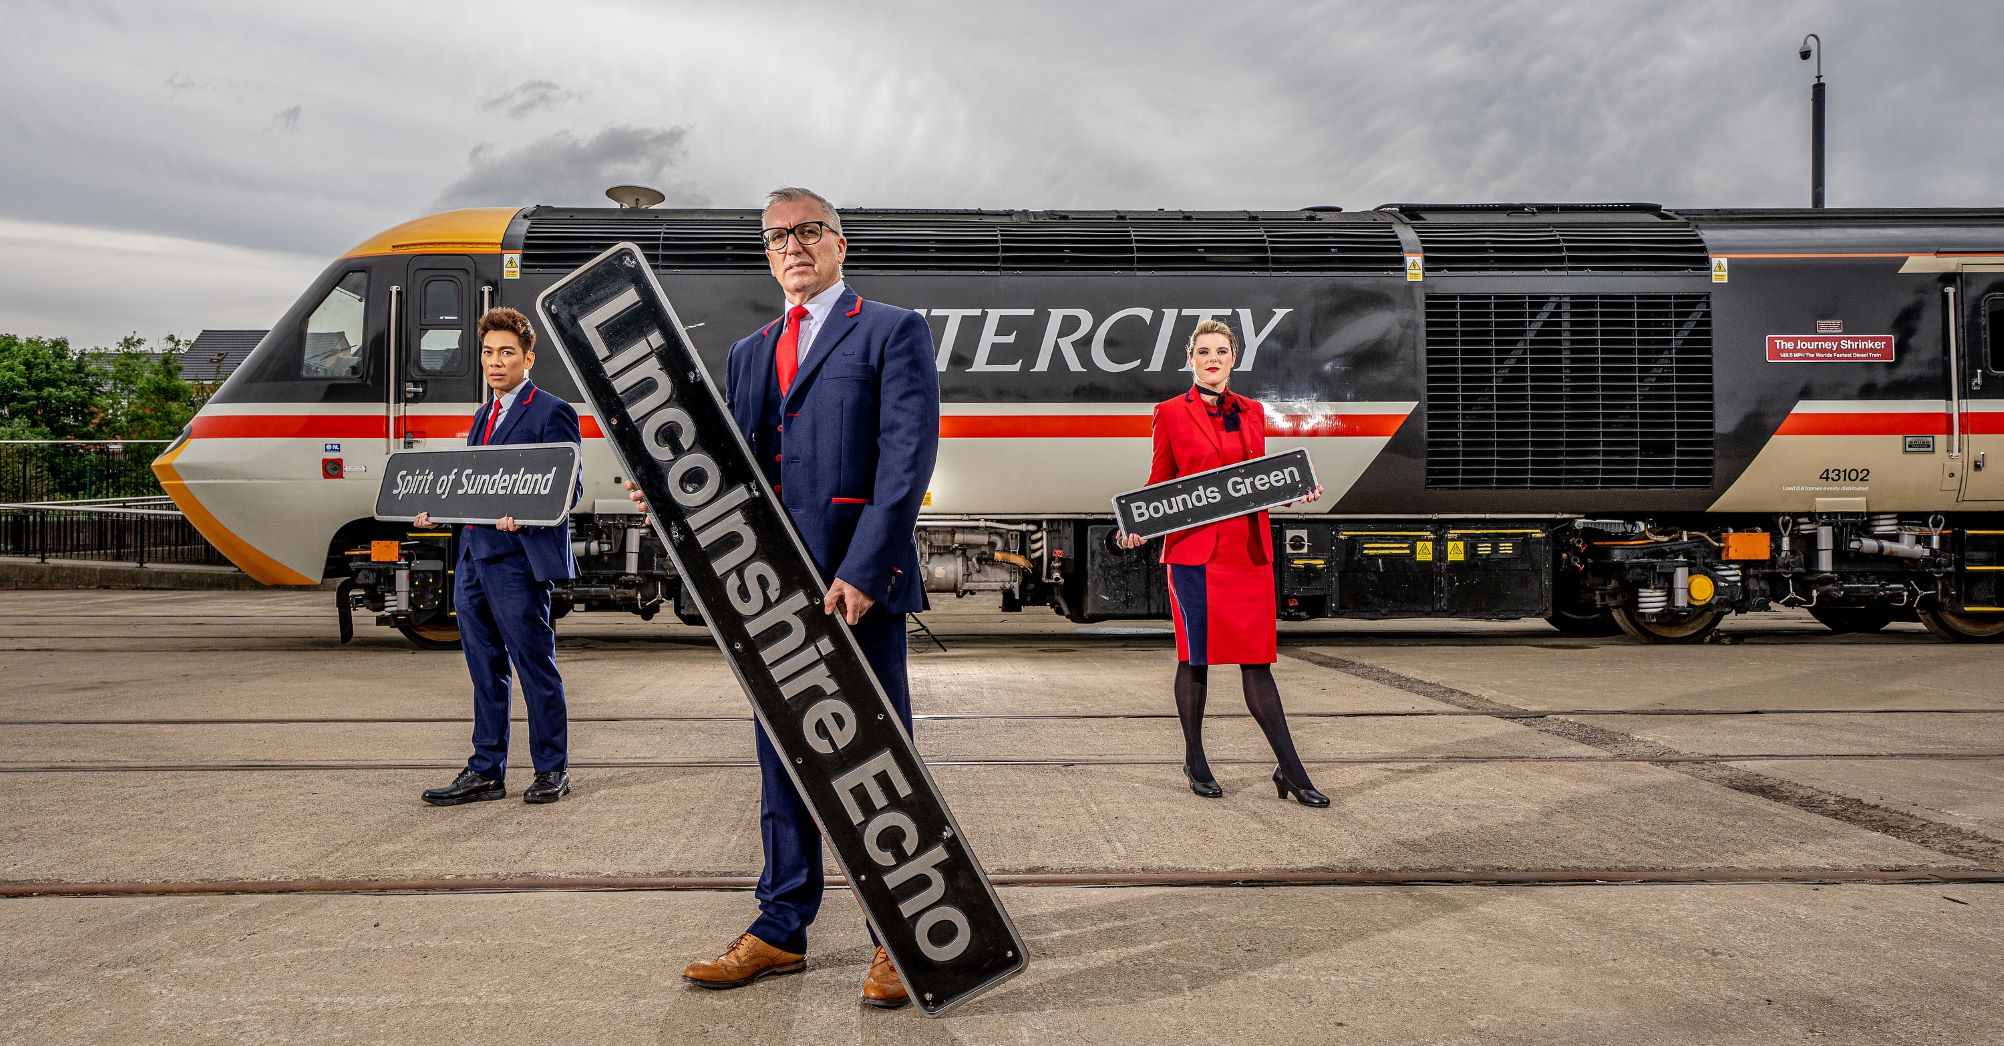 Historic LNER Nameplates Raise Thousands Of Pounds For Charity